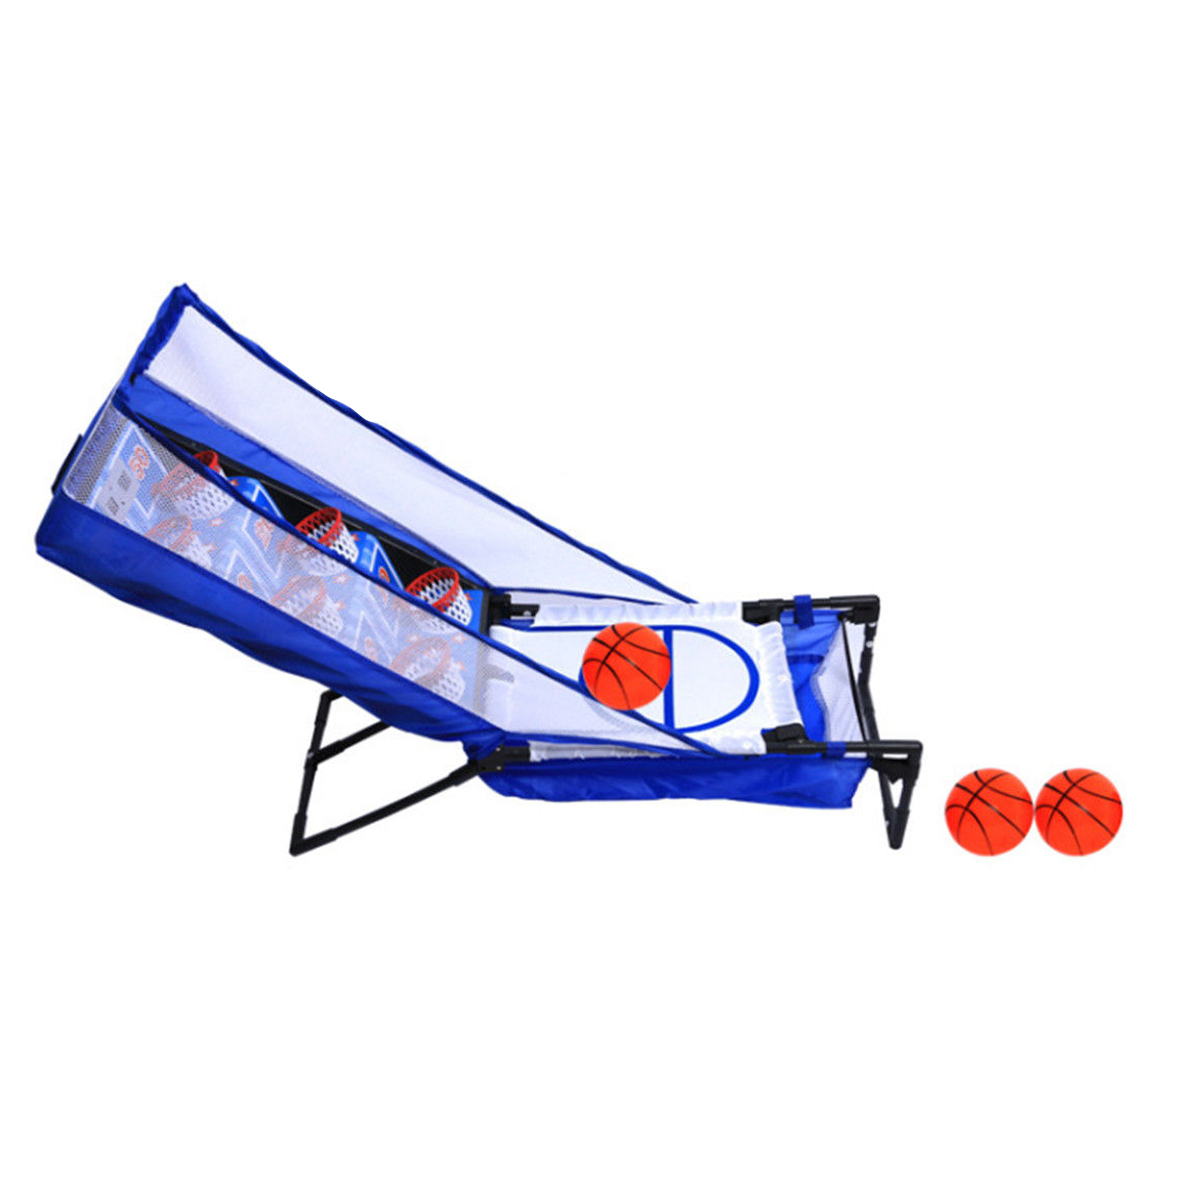 Kids Basketball Shooting Machine Electronic LED Scoring Record Home Indoor Toy G